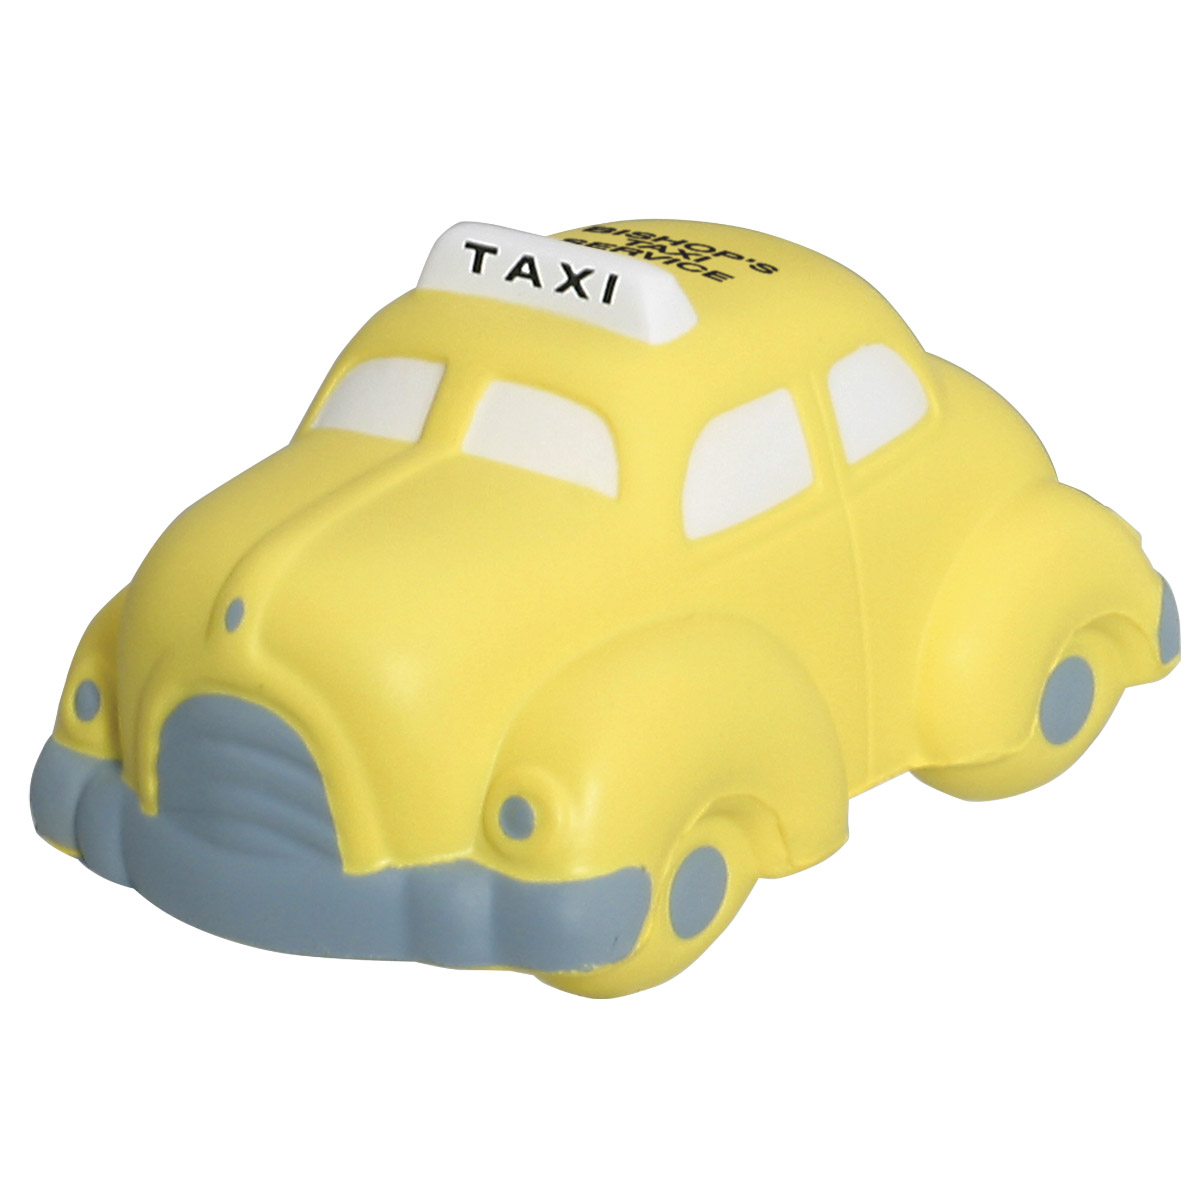 Taxi Stress Reliever, LTR-TX31, 1 Colour Imprint